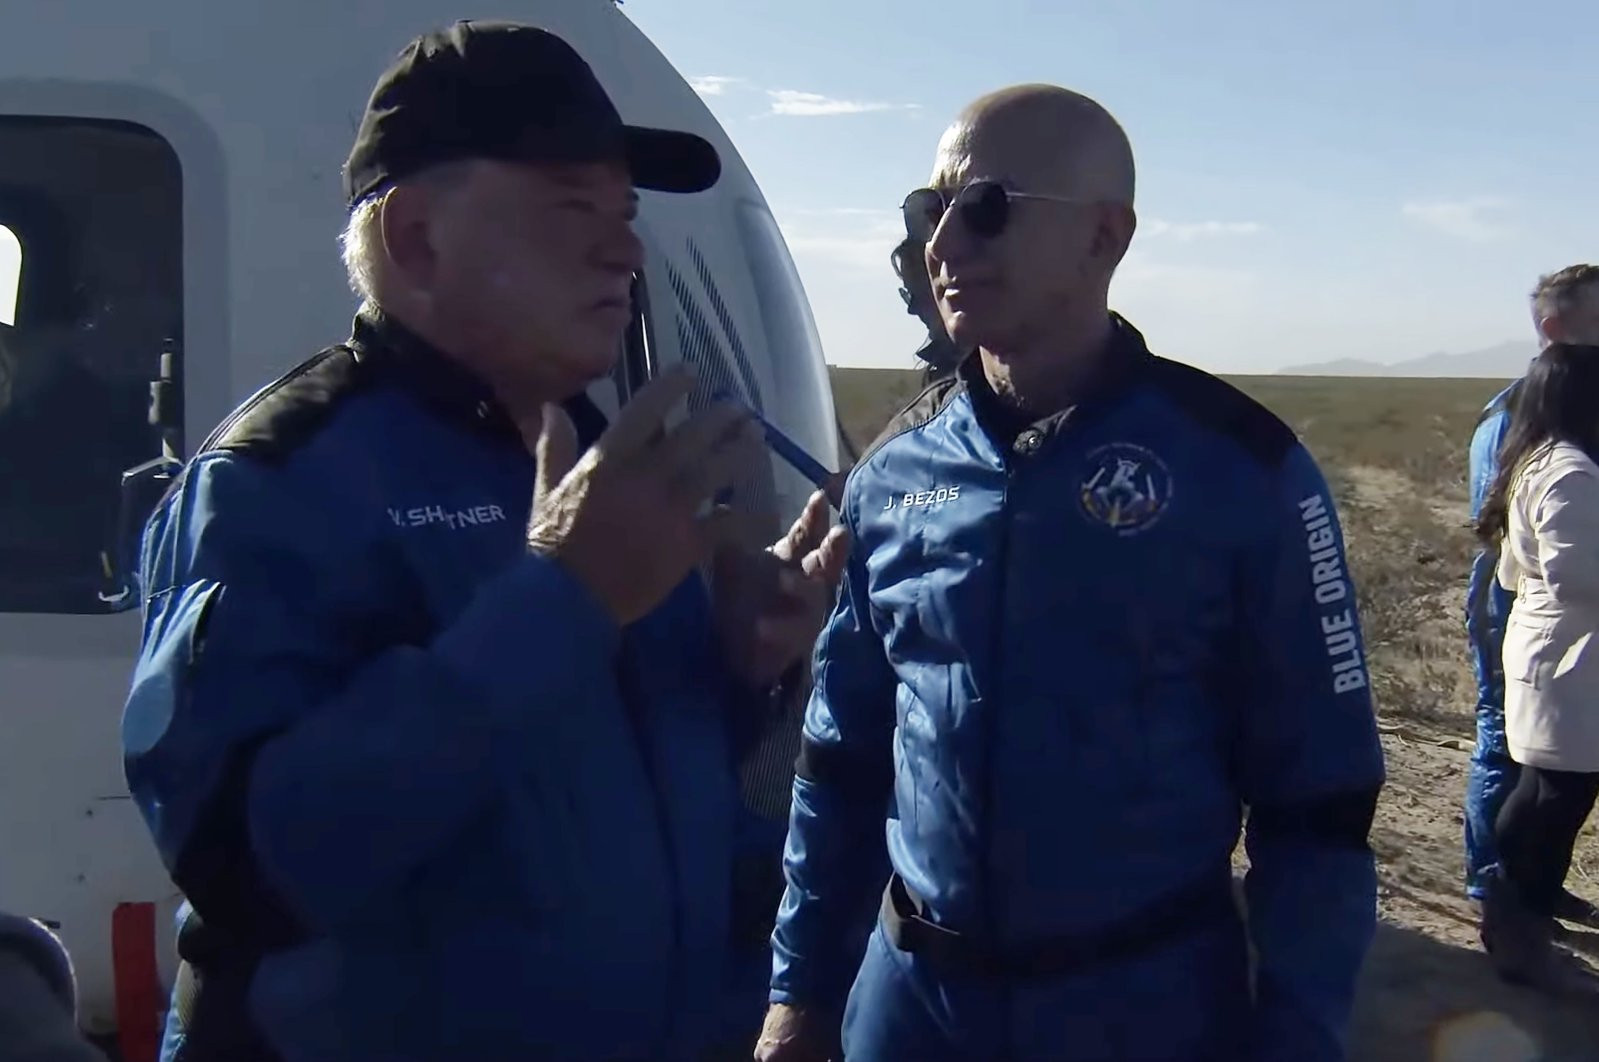 A handout screengrab released by Blue Origin shows Jeff Bezos (R) greeting Canadian actor William Shatner (L) as he emerges from the capsule after landing following the New Shepard's NS-18 mission to space near Van Horn, Texas, U.S., Oct. 13, 2021. (Blue Origin Handout/EPA)